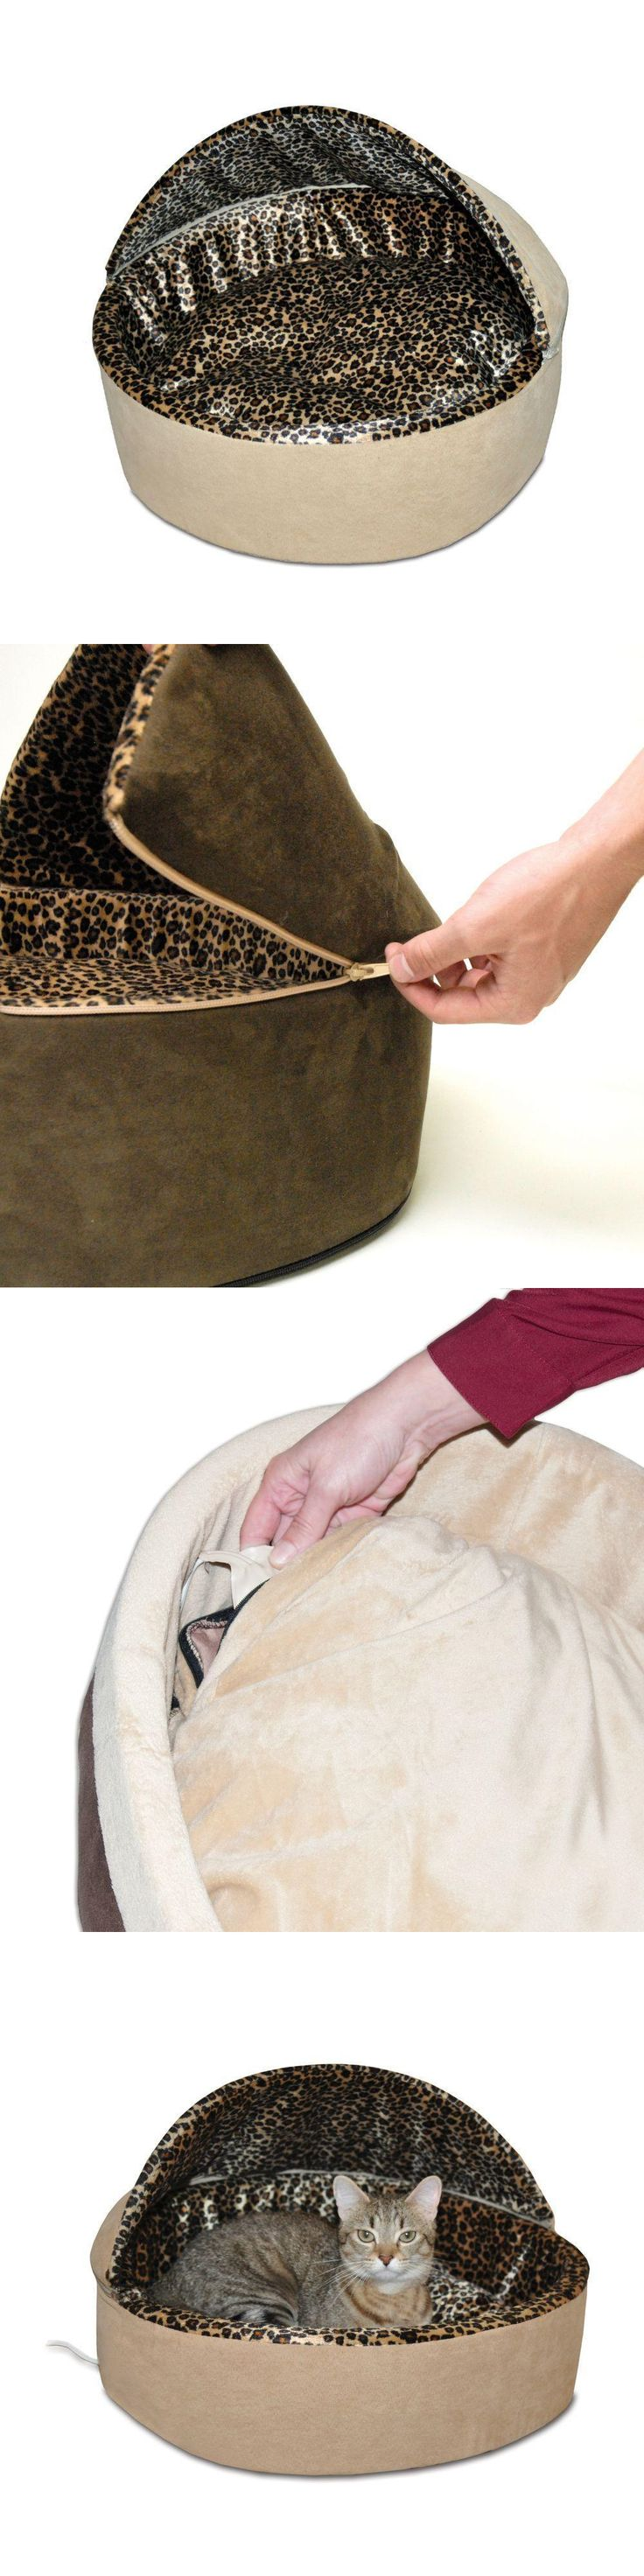 Nectar Feeders 42349: Kandh Pet Products Thermo-Kitty Deluxe Large Tan Leopard Hooded Heated Cat Bed -> BUY IT NOW ONLY: $78.45 on eBay!